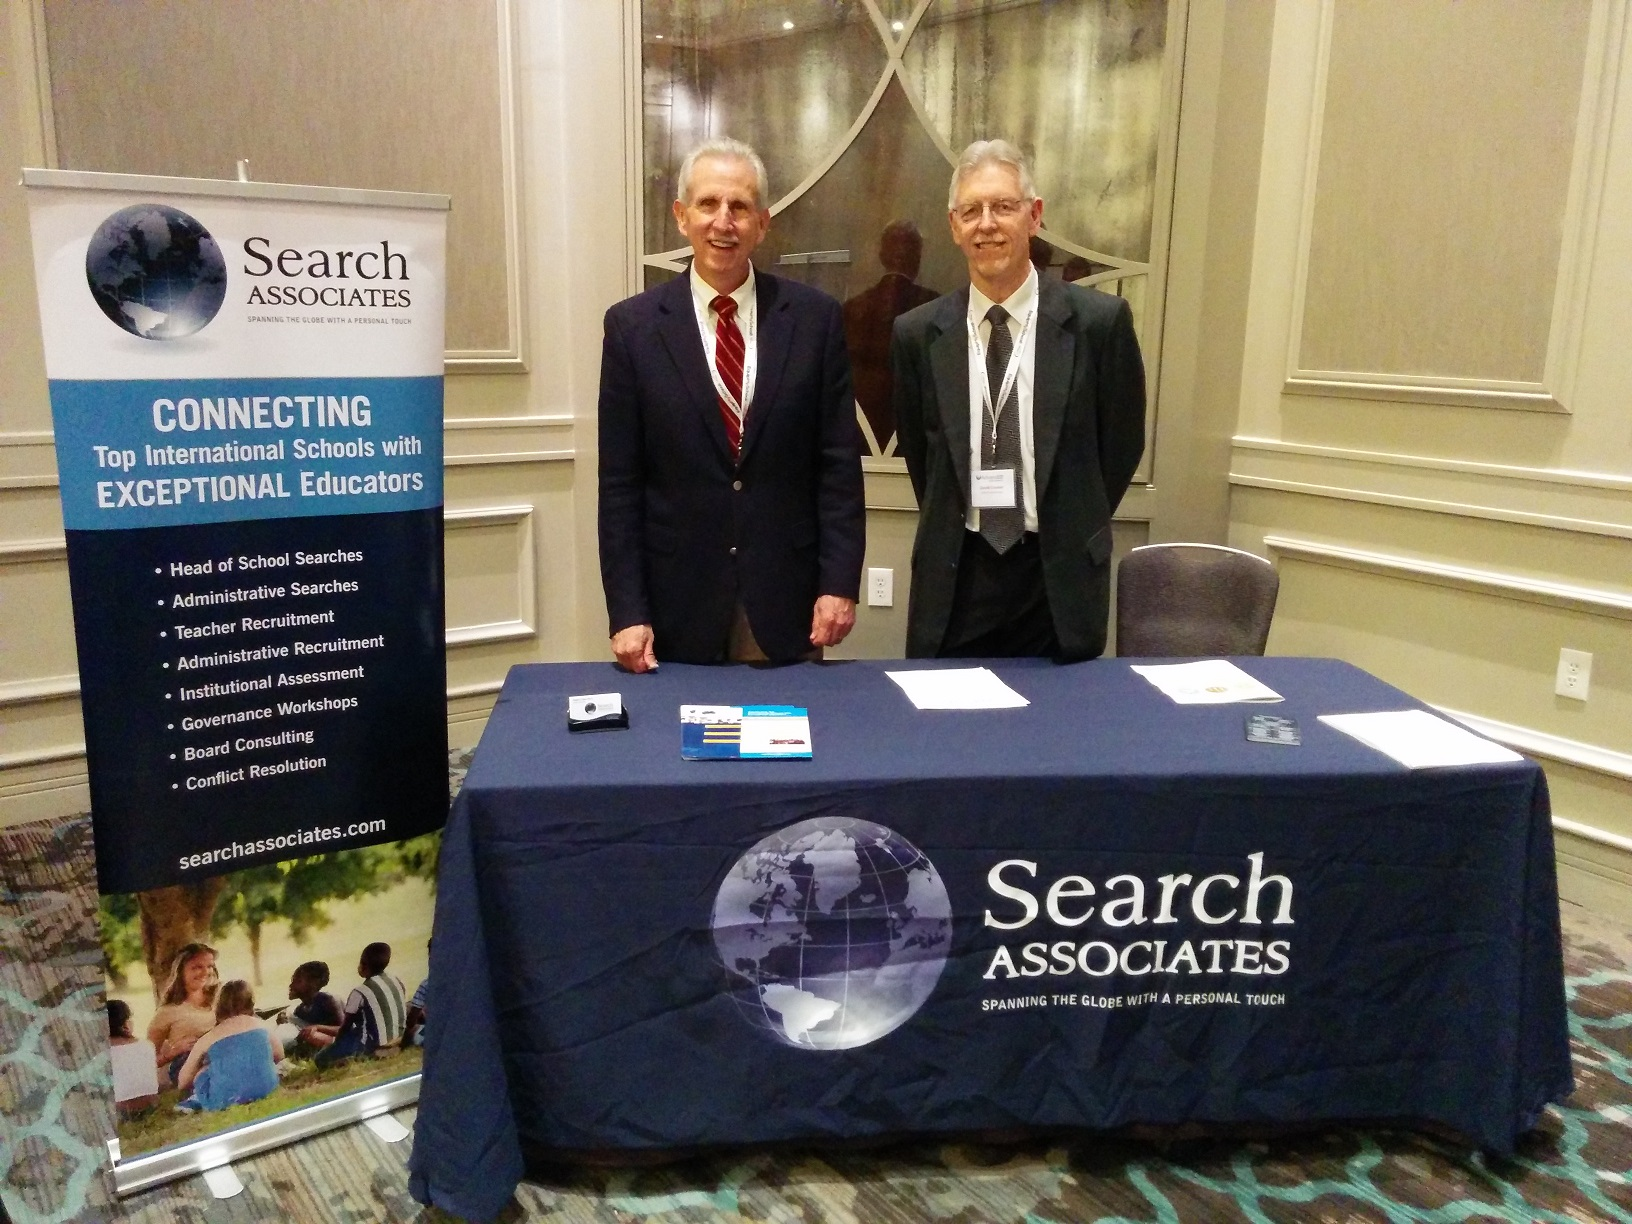 Senior Associates Ralph Jahr (L) and David Cramer (R) at the exhibitor table